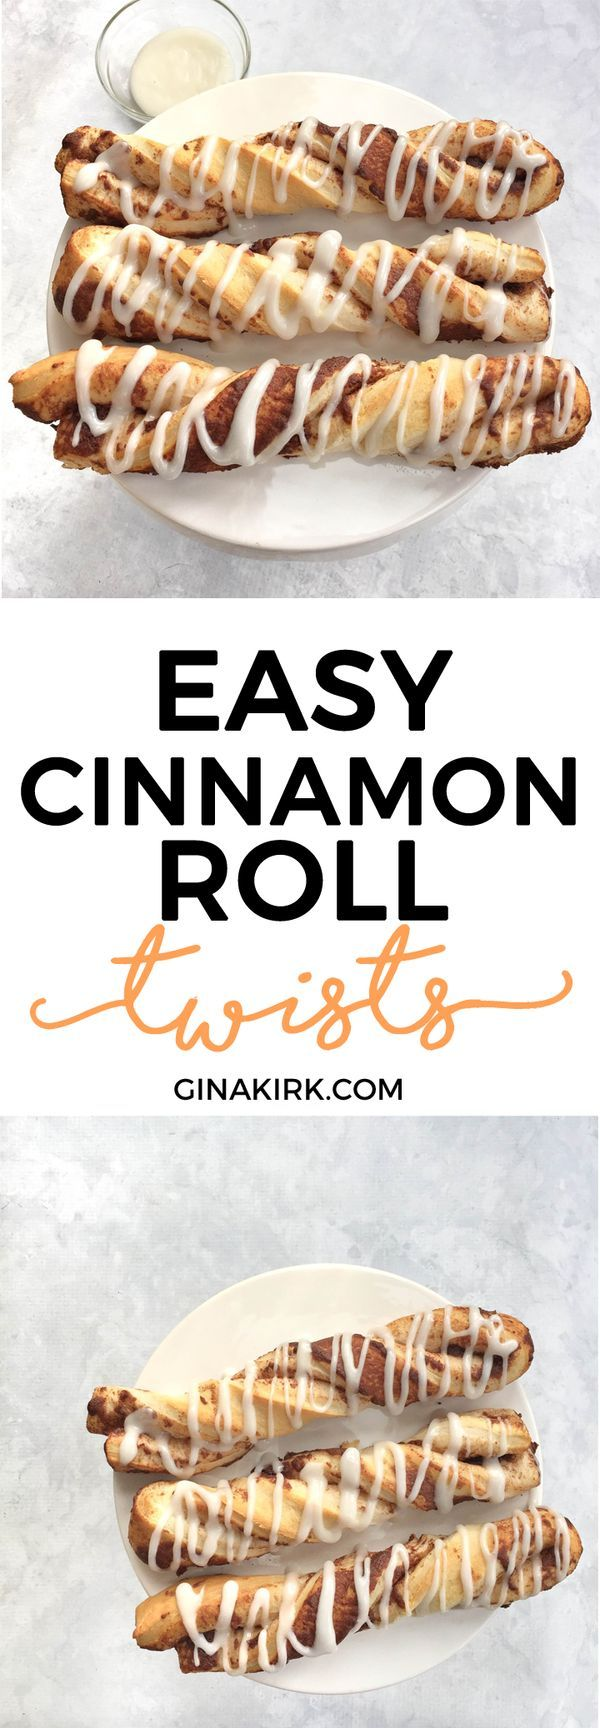 Easy cinnamon roll twists | Canned cinnamon roll breakfast ideas | Cinnamon roll bread sticks | Breakfast cinnamon sticks | GinaKirk.com @ginaekirk